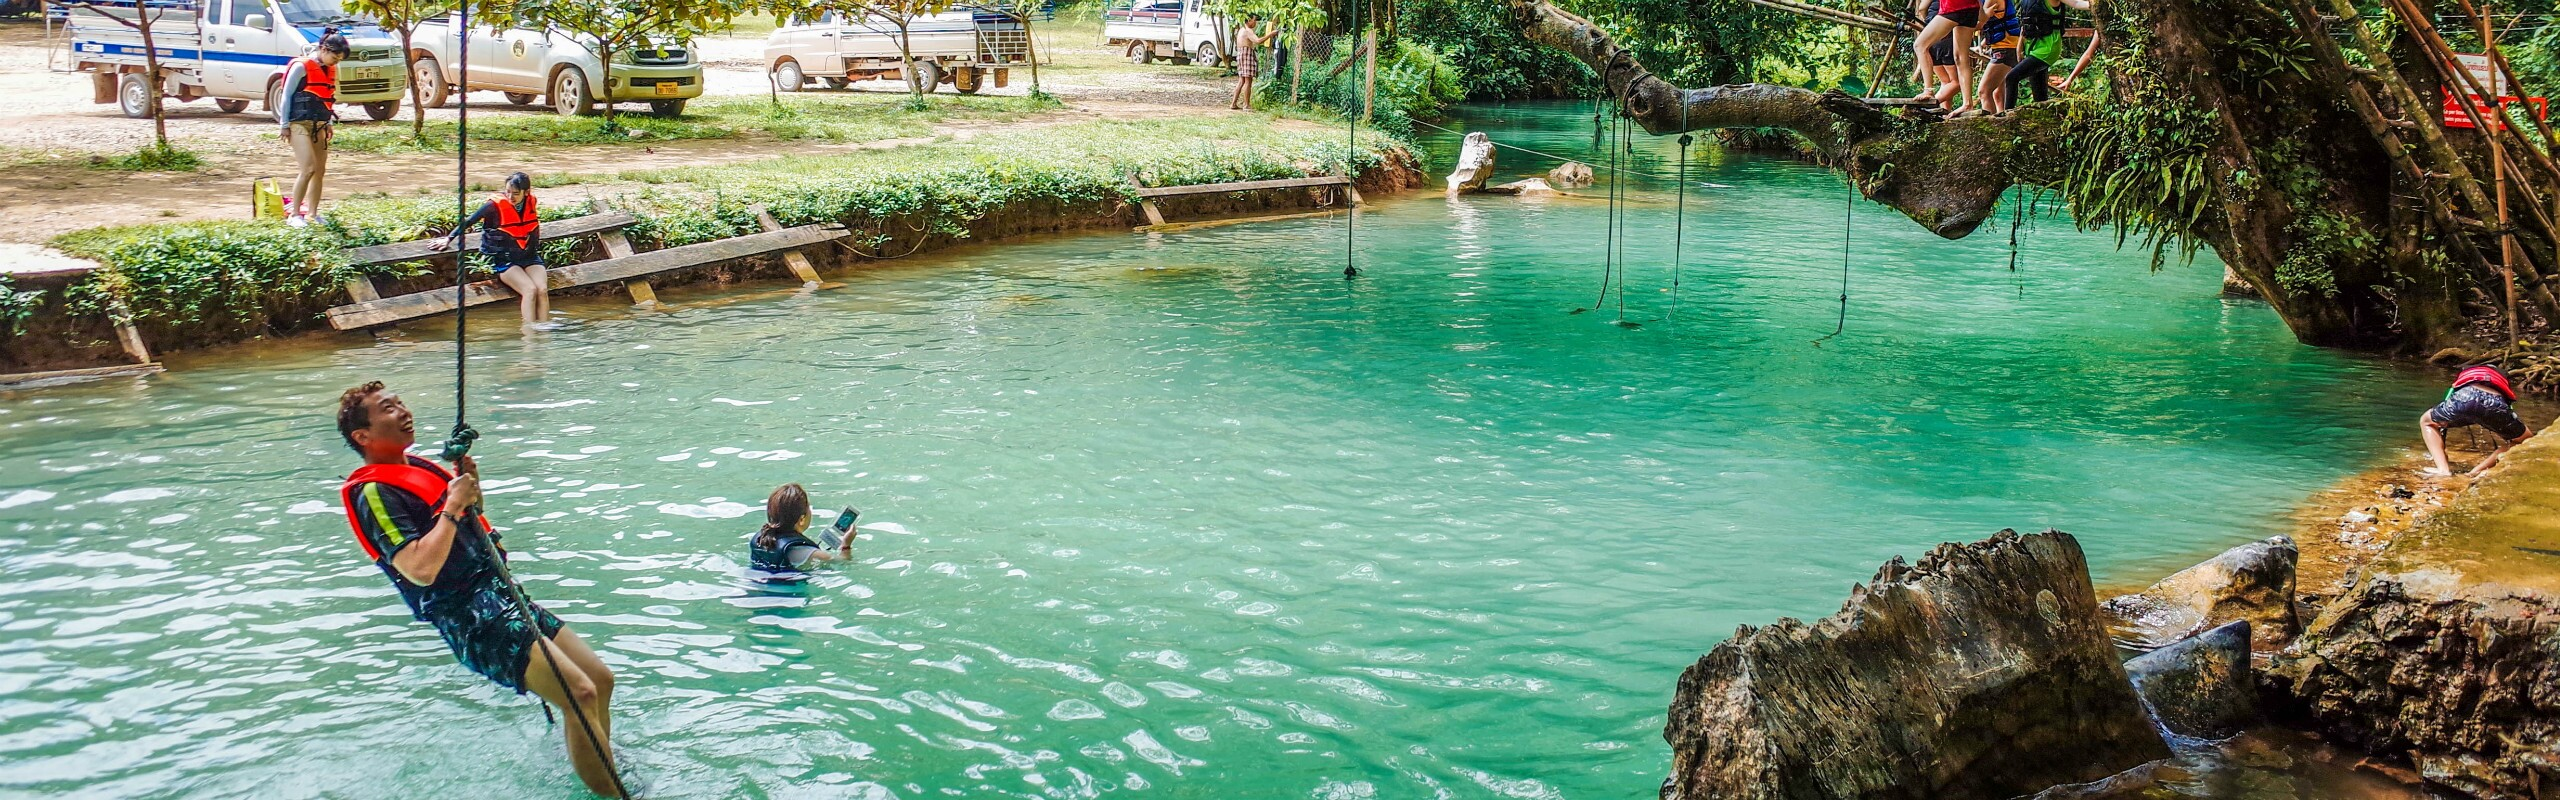 The Top 8 Things to Do in Vang Vieng, Laos